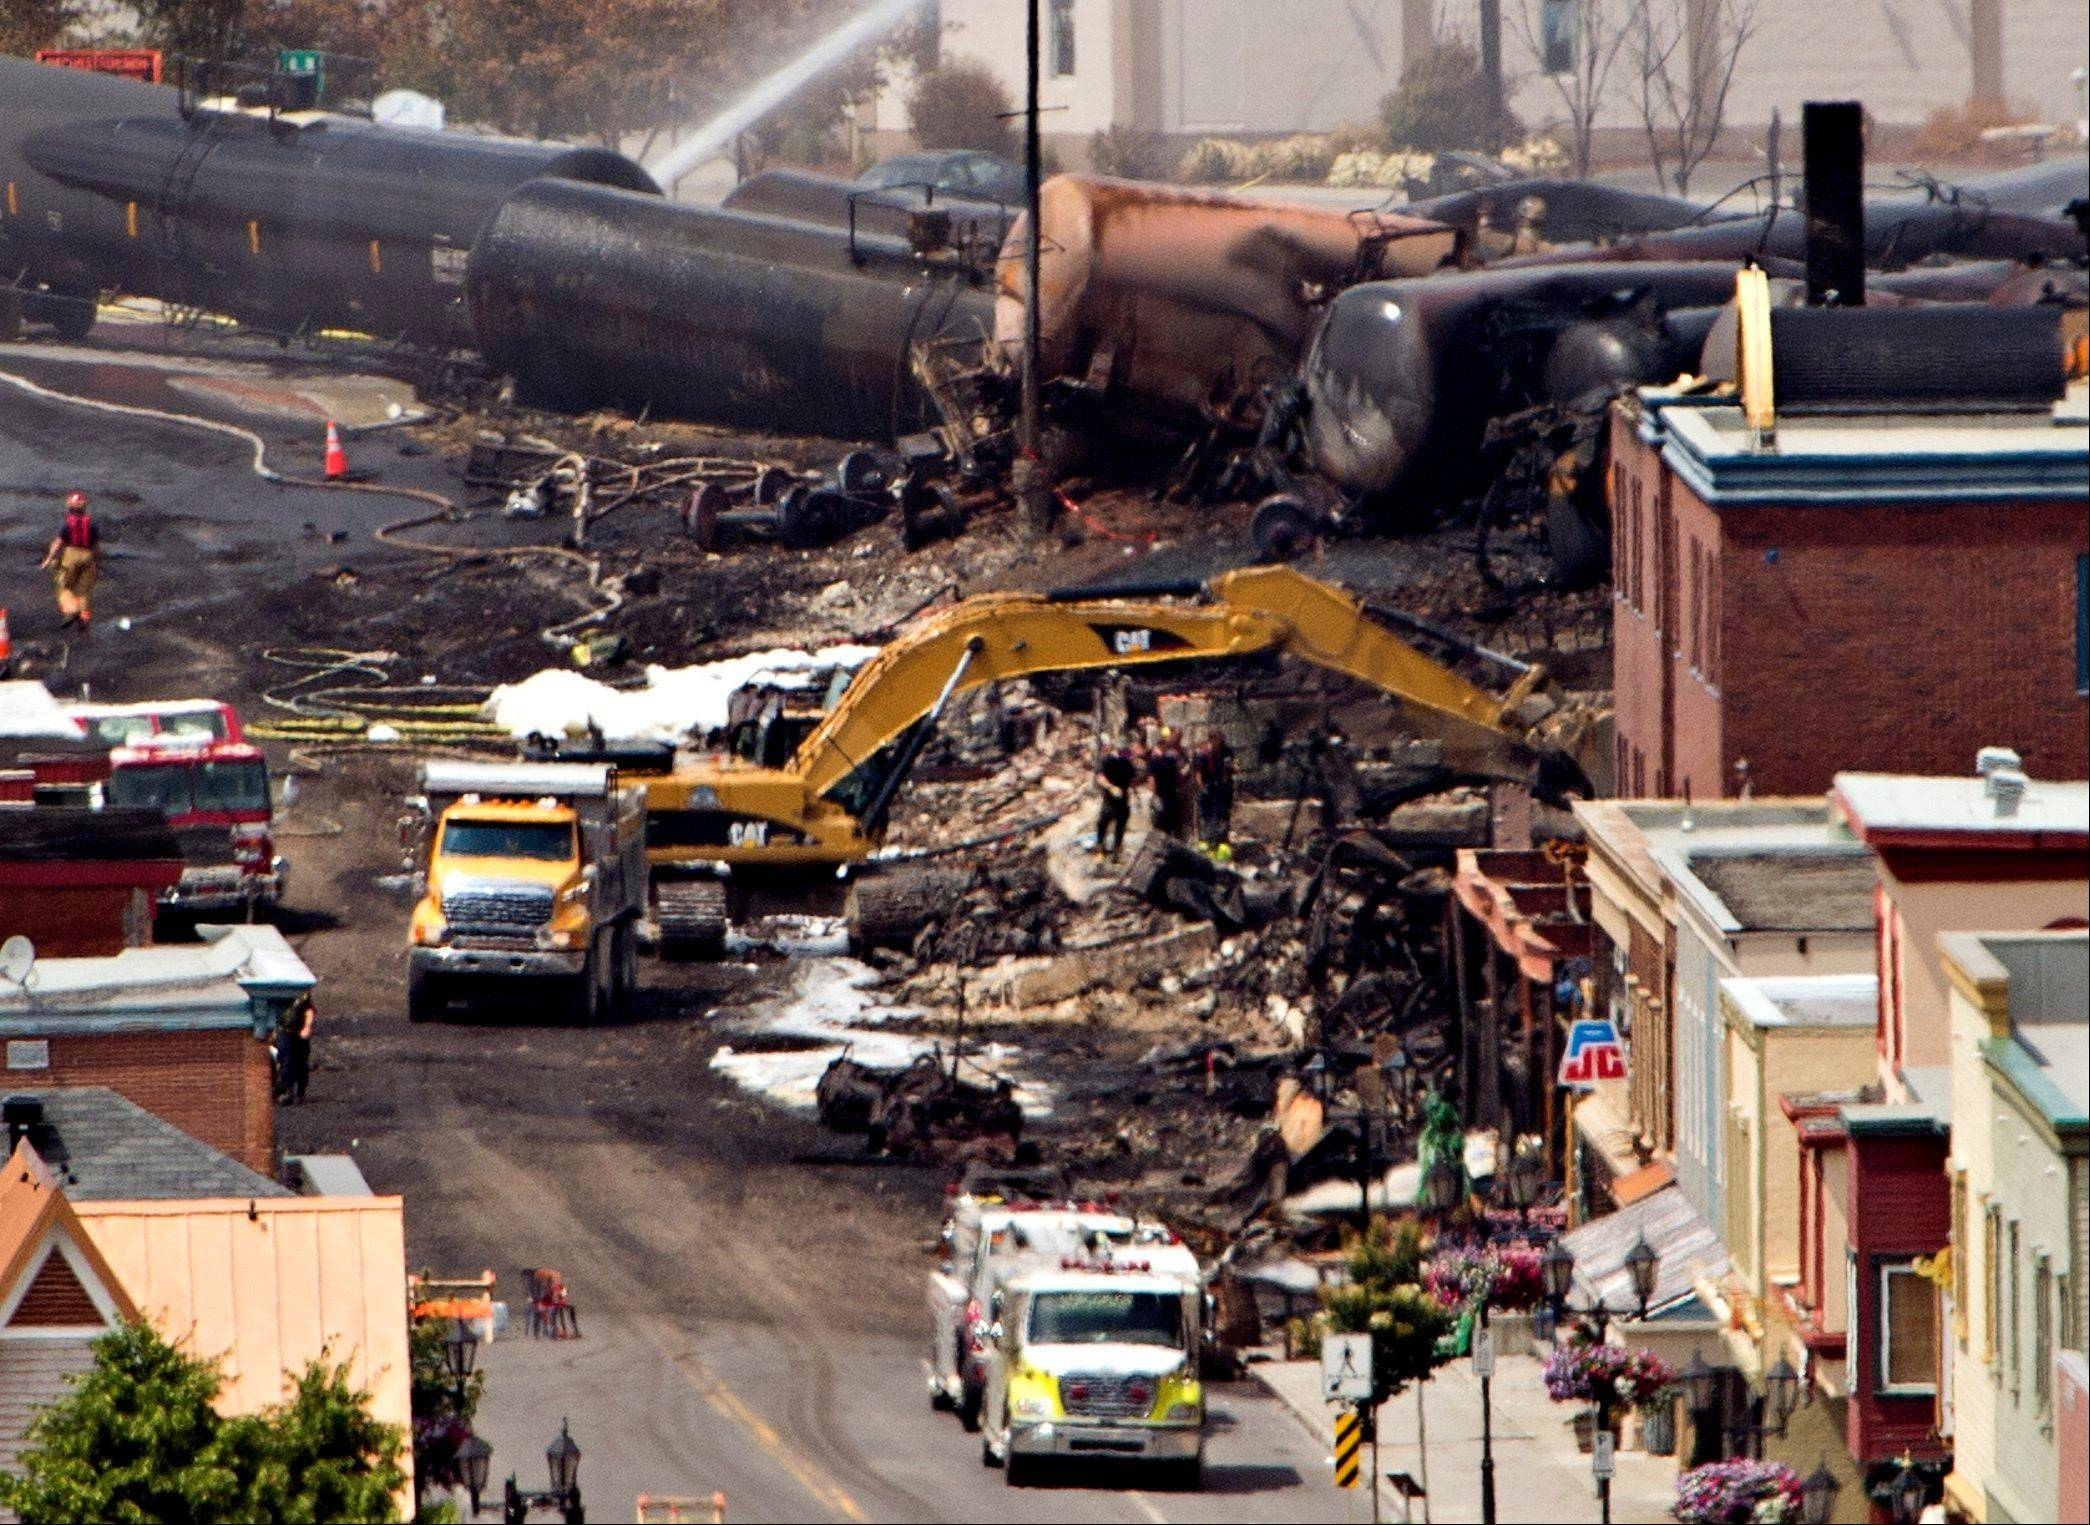 Searchers dig through the rubble for victims in Lac-Megantic, Quebec, Monday, after a runaway train derailed early Saturday igniting tanker cars carrying crude oil. The train is owned by Montreal, Maine & Atlantic Railway, whose parent company Rail World, Inc., is based in Rosemont.